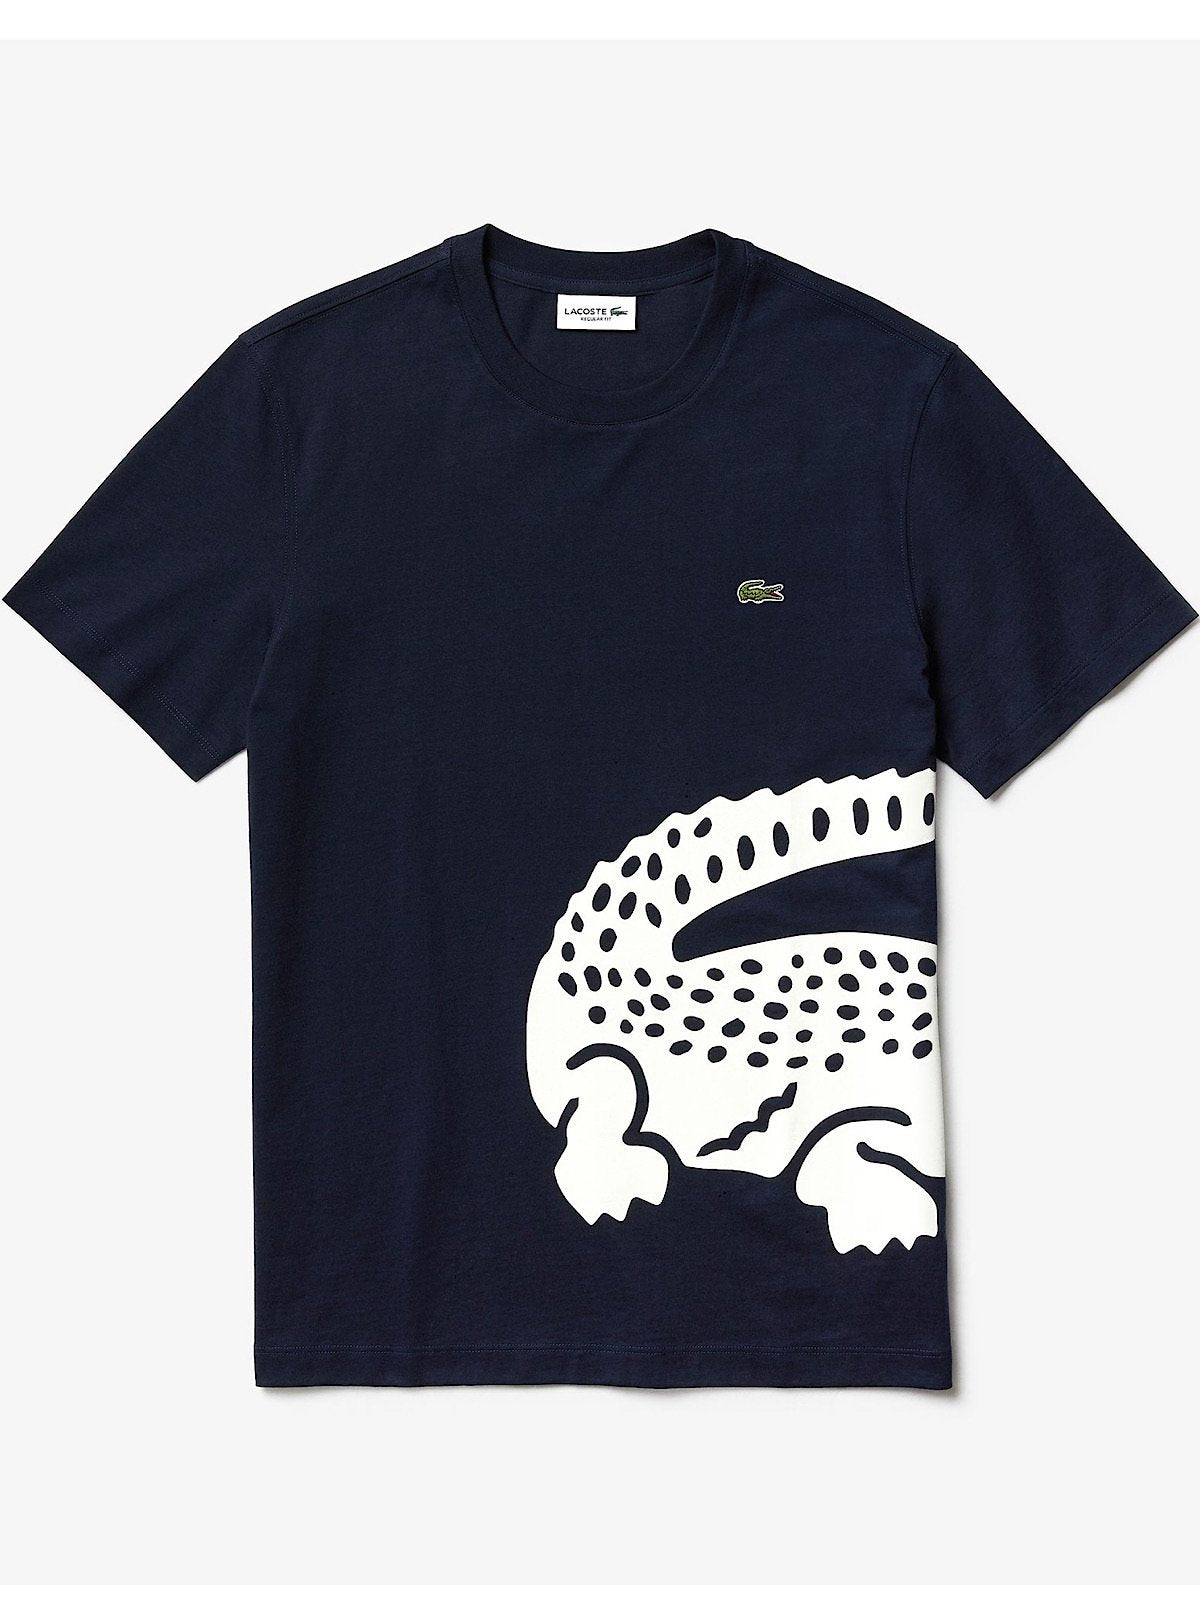 Lacoste T-Shirt - Big Croc - Navy - TH5139